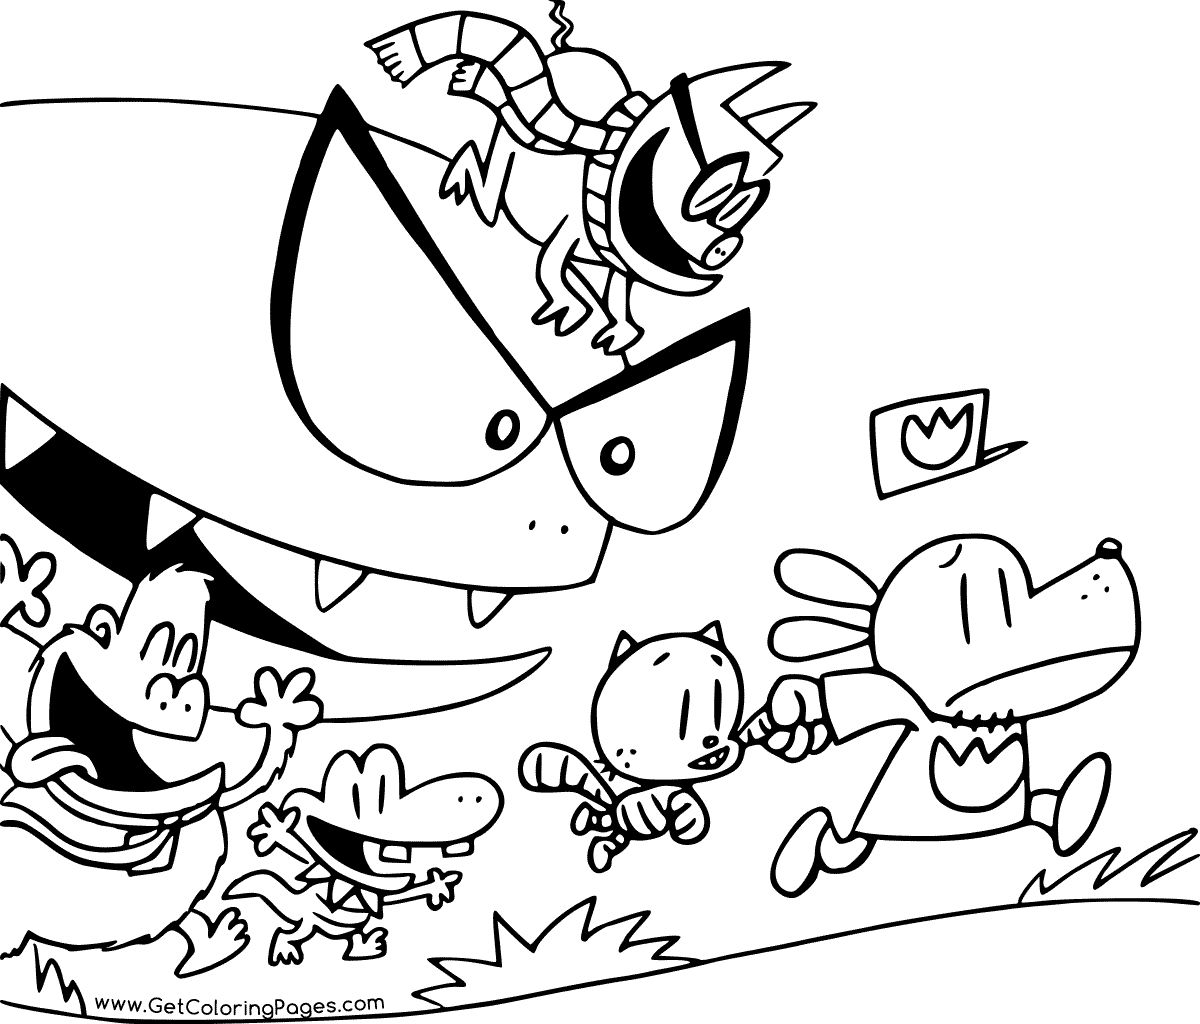 Dogman Coloring Pages For Kids In 2020 Coloring Pages Coloring Pages For Kids Colouring Pages